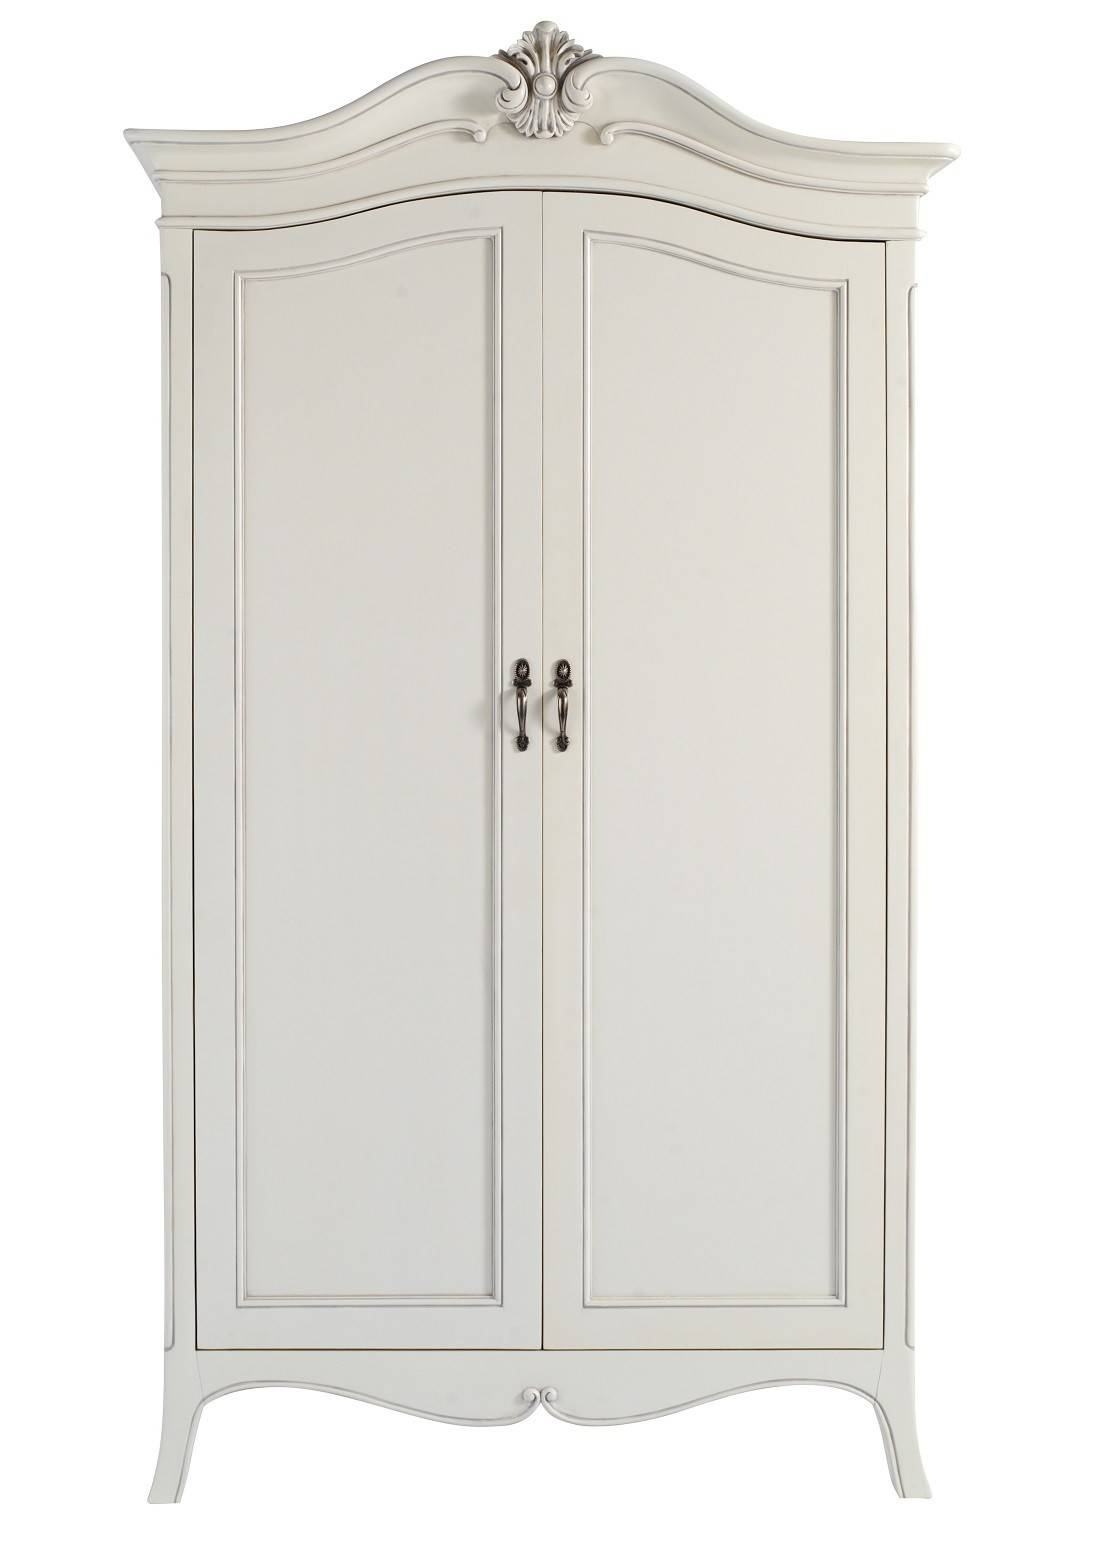 Louis French Ivory Painted 2 Door Double Wardrobe | Oak Furniture Uk regarding White Wardrobes French Style (Image 10 of 15)